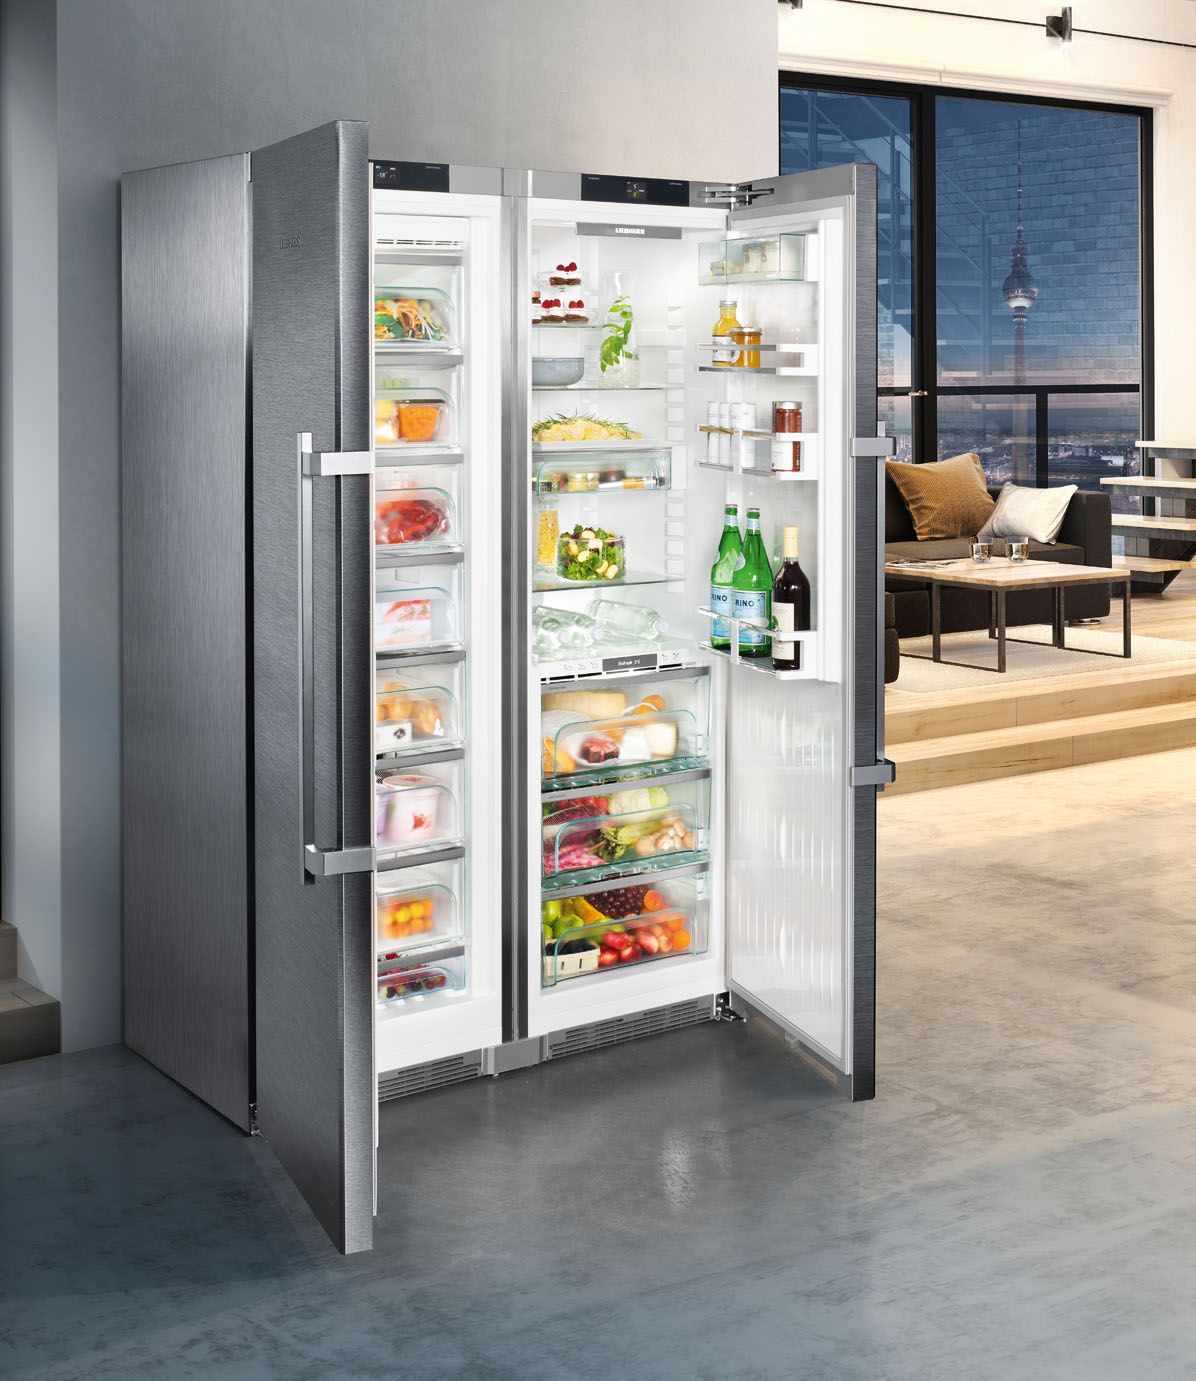 Sbses 8663 Premium Biofresh Nofrost From Liebherr Offers Even More Interior Capacity For Food Storage Economy And Energy Efficiency Quiet Operati Dom Dlya Doma